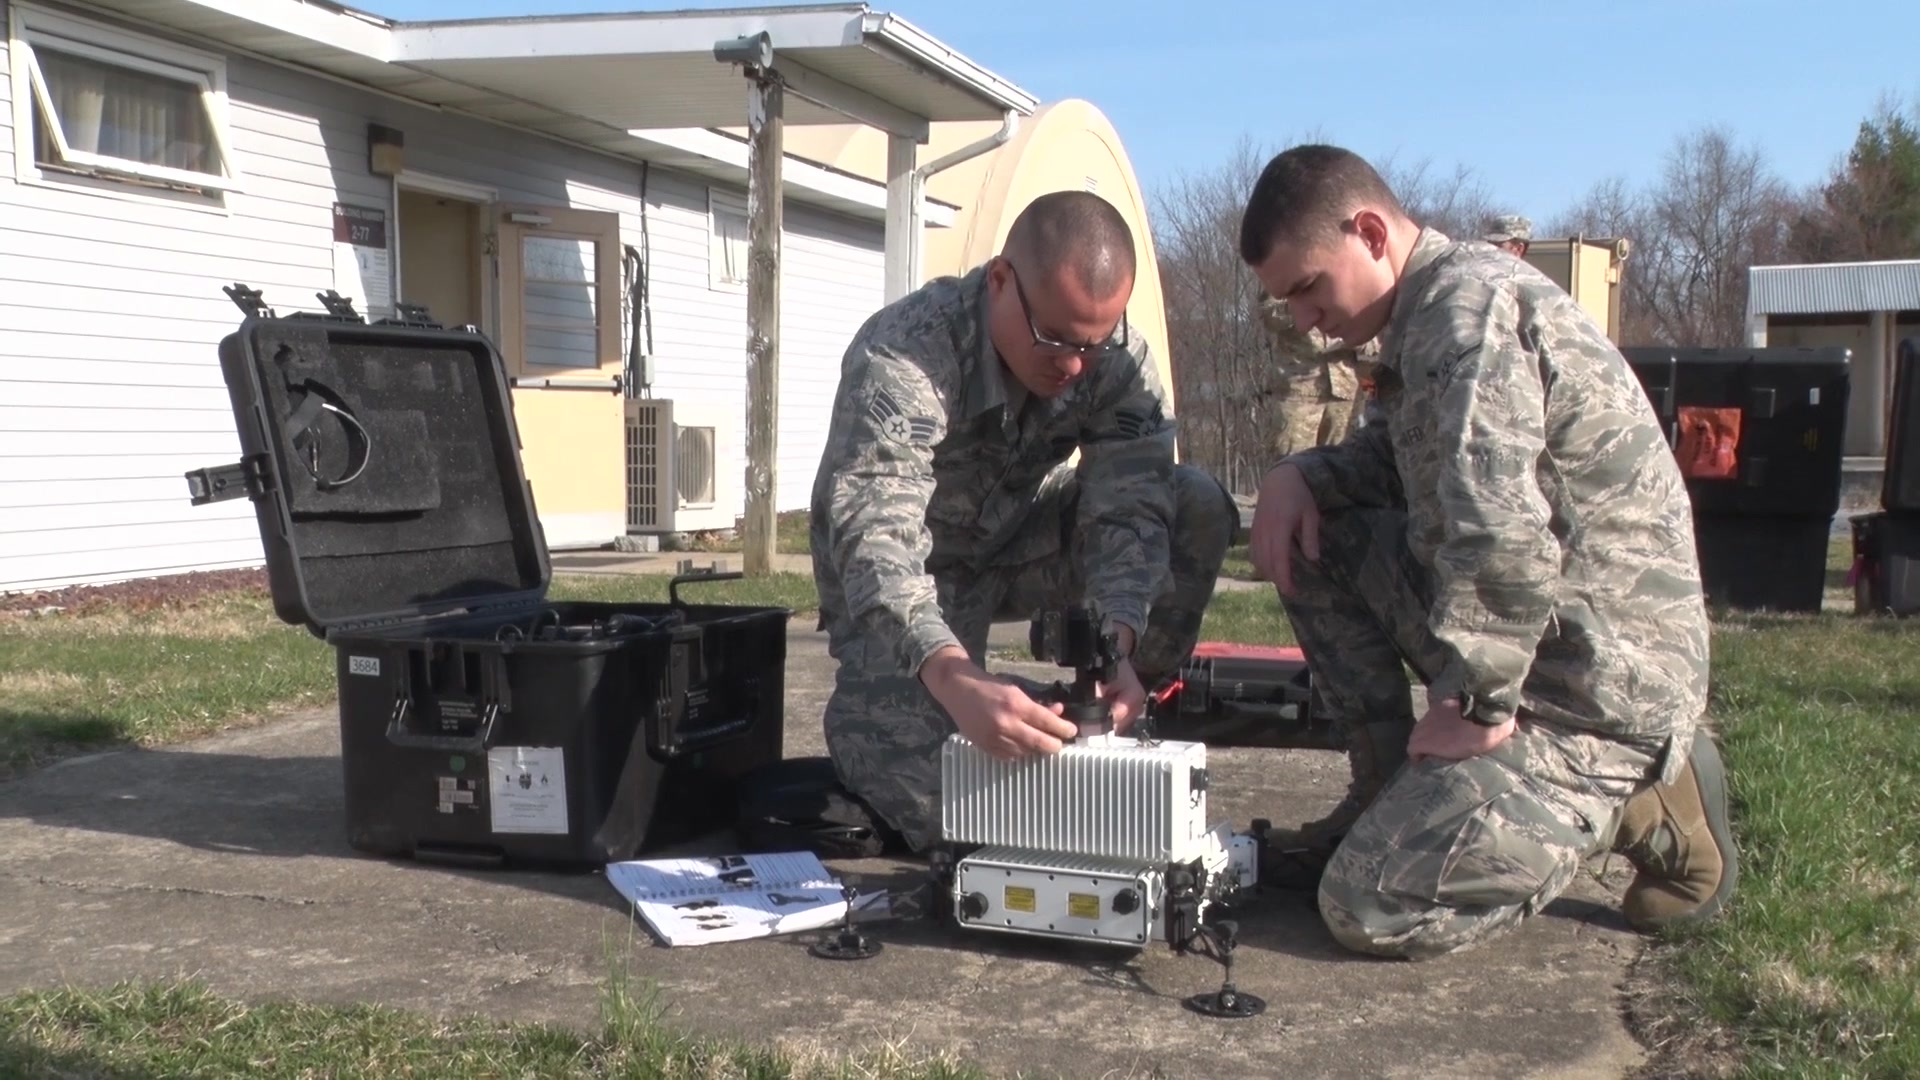 The 193rd Special Operations Communication Squadron spent four day at Fort Indiantown Gap, Annville, Pennsylvania preparing for their upcoming two week exercise this summer.  Here they set up their tent to get comms up and running, then tear it down and place it back up.